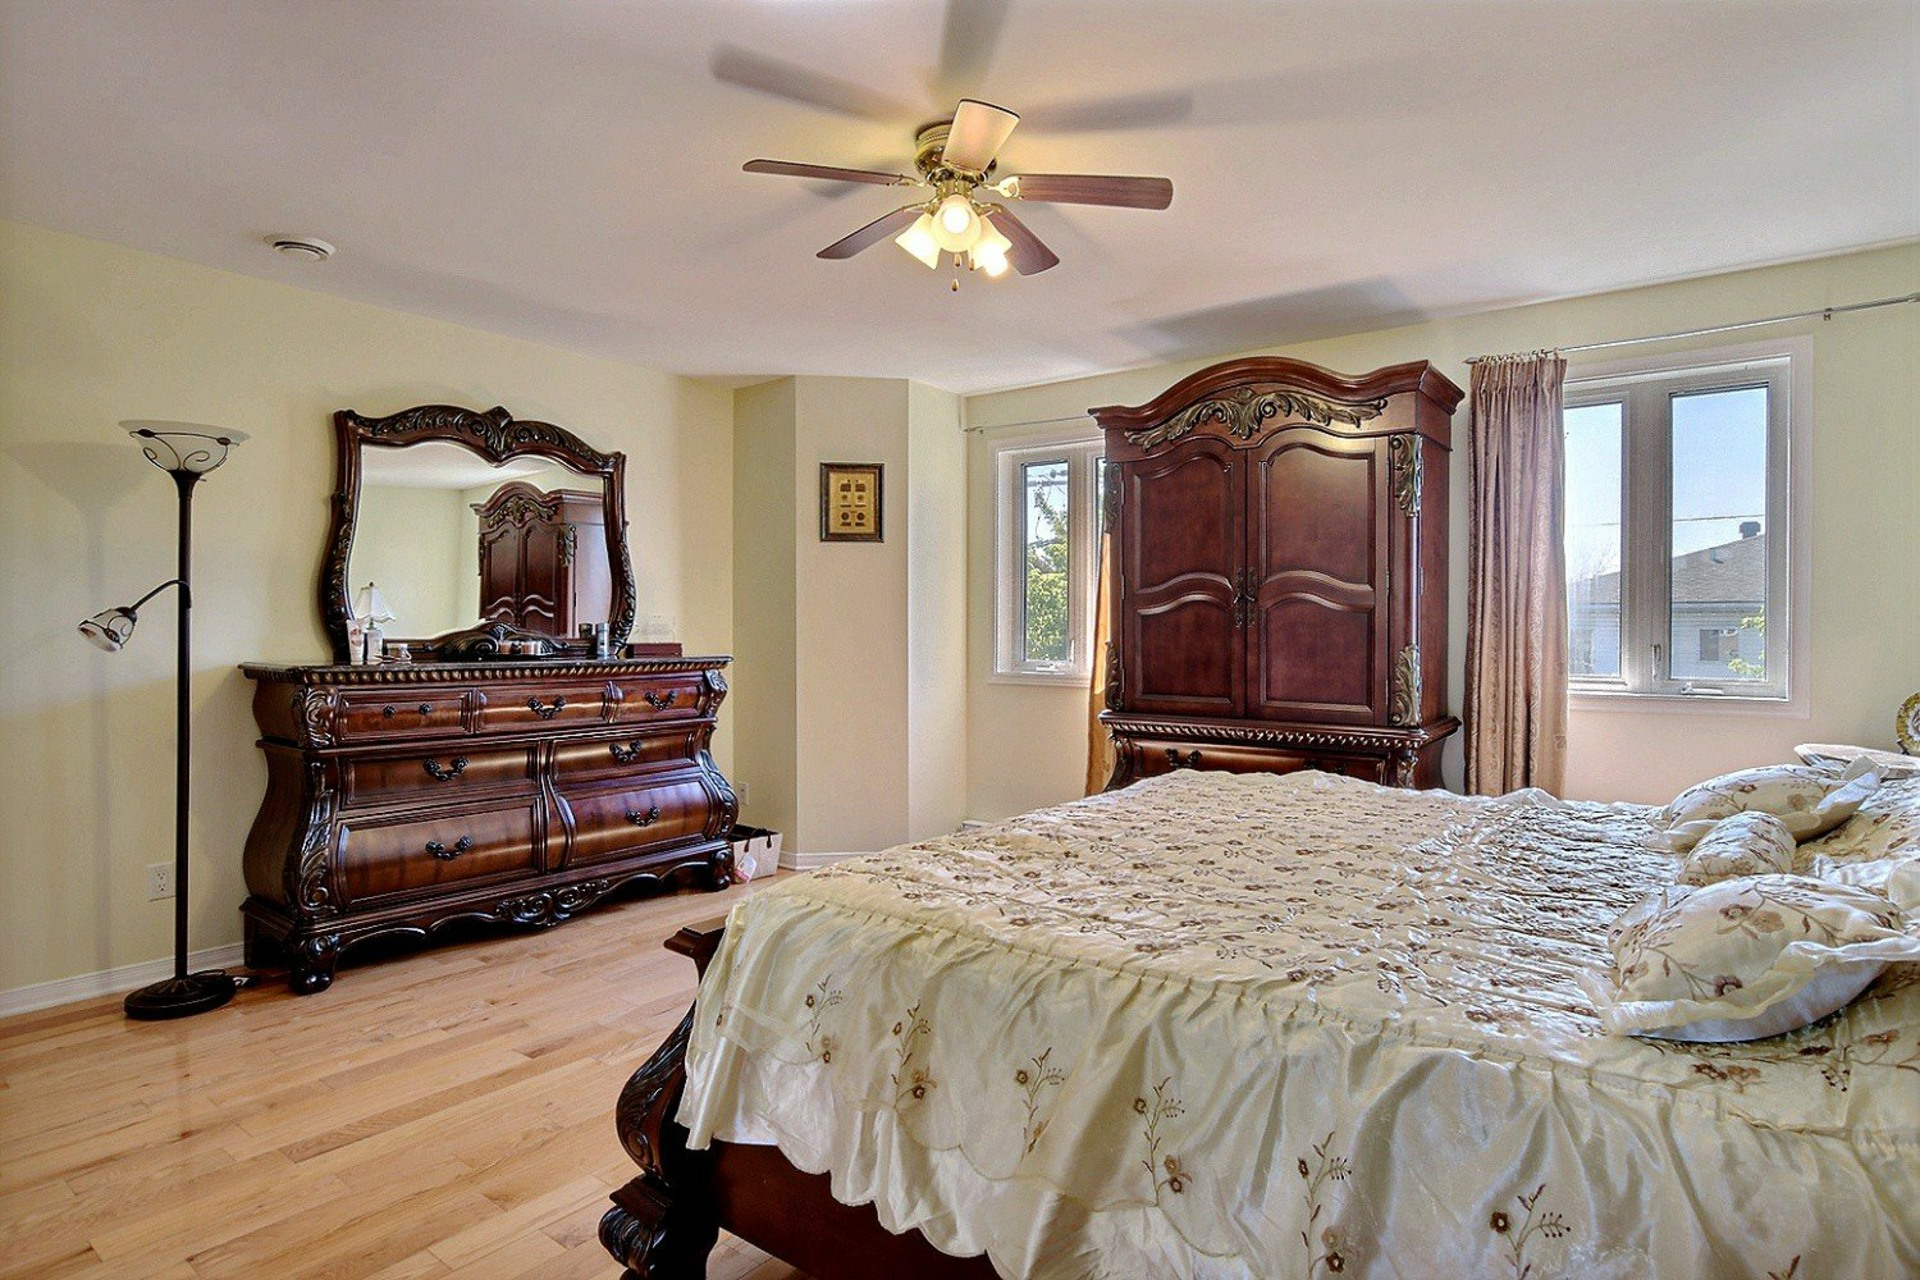 image 11 - House For sale Brossard - 6 rooms